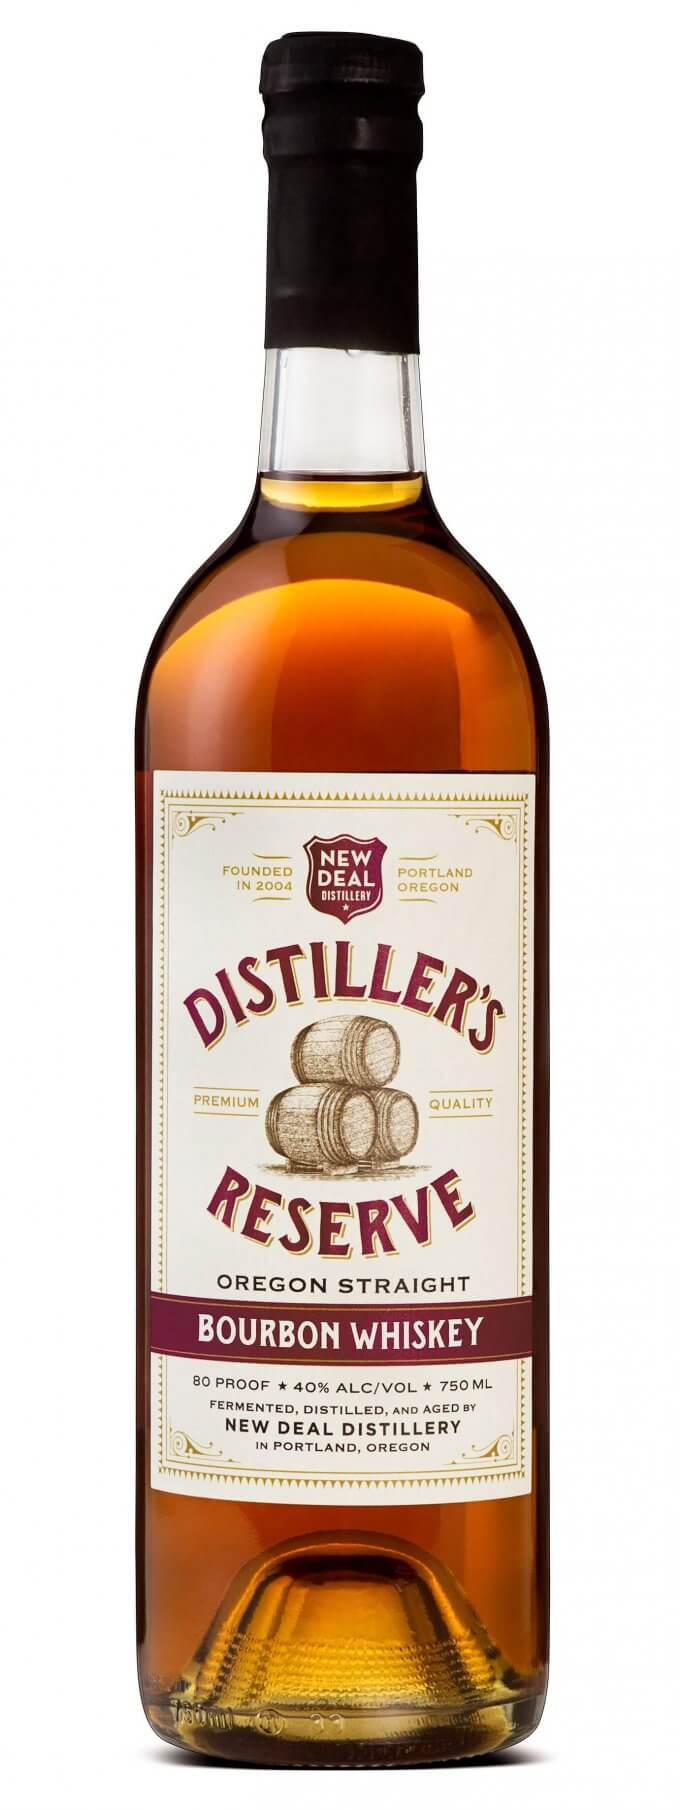 Oregon Bourbon - New Deal Distillers Reserve Oregon Straight Bourbon Whiskey